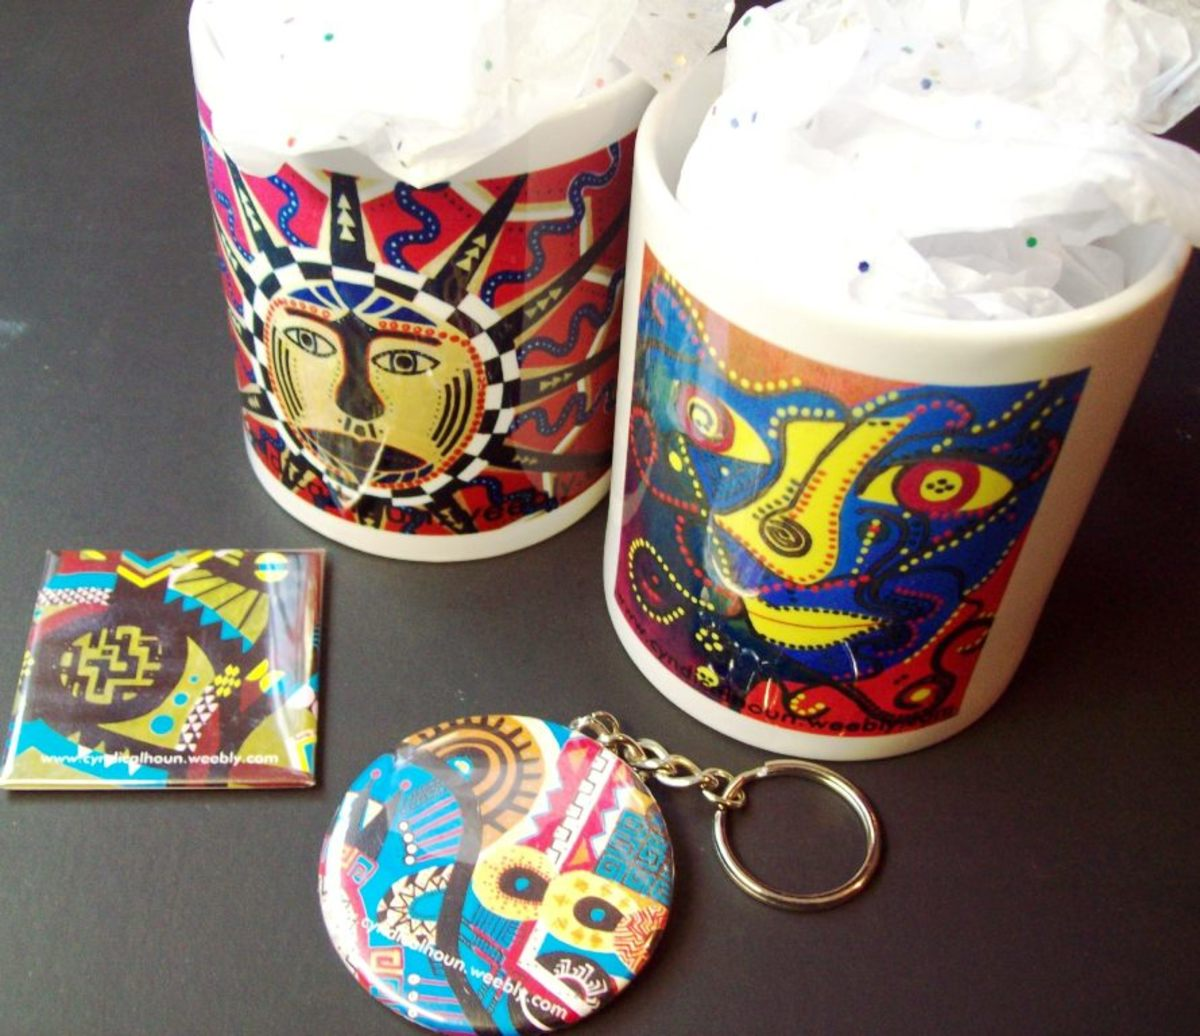 I have uploaded images from my computer to zazzle.com's interface.  Here I have cups, a magnet and a keychain with my personal artwork on it.  It's easy to do and a great way to show off your child's artistic creations.